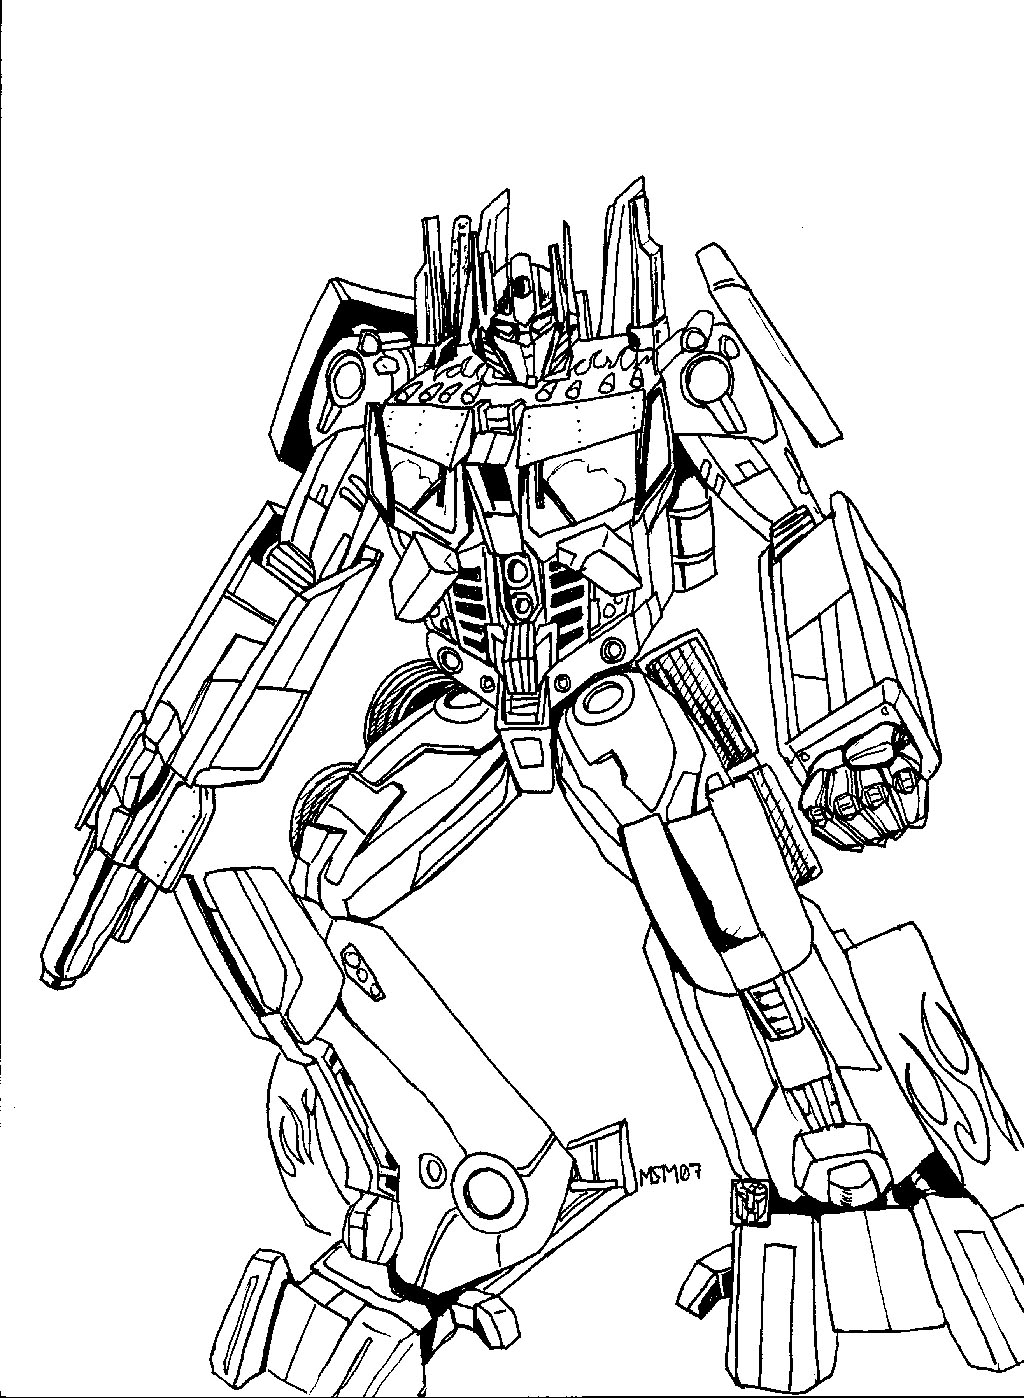 Free printable transformers coloring pages for kids transformers animated coloring pages transformers bumblebee coloring pages biocorpaavc